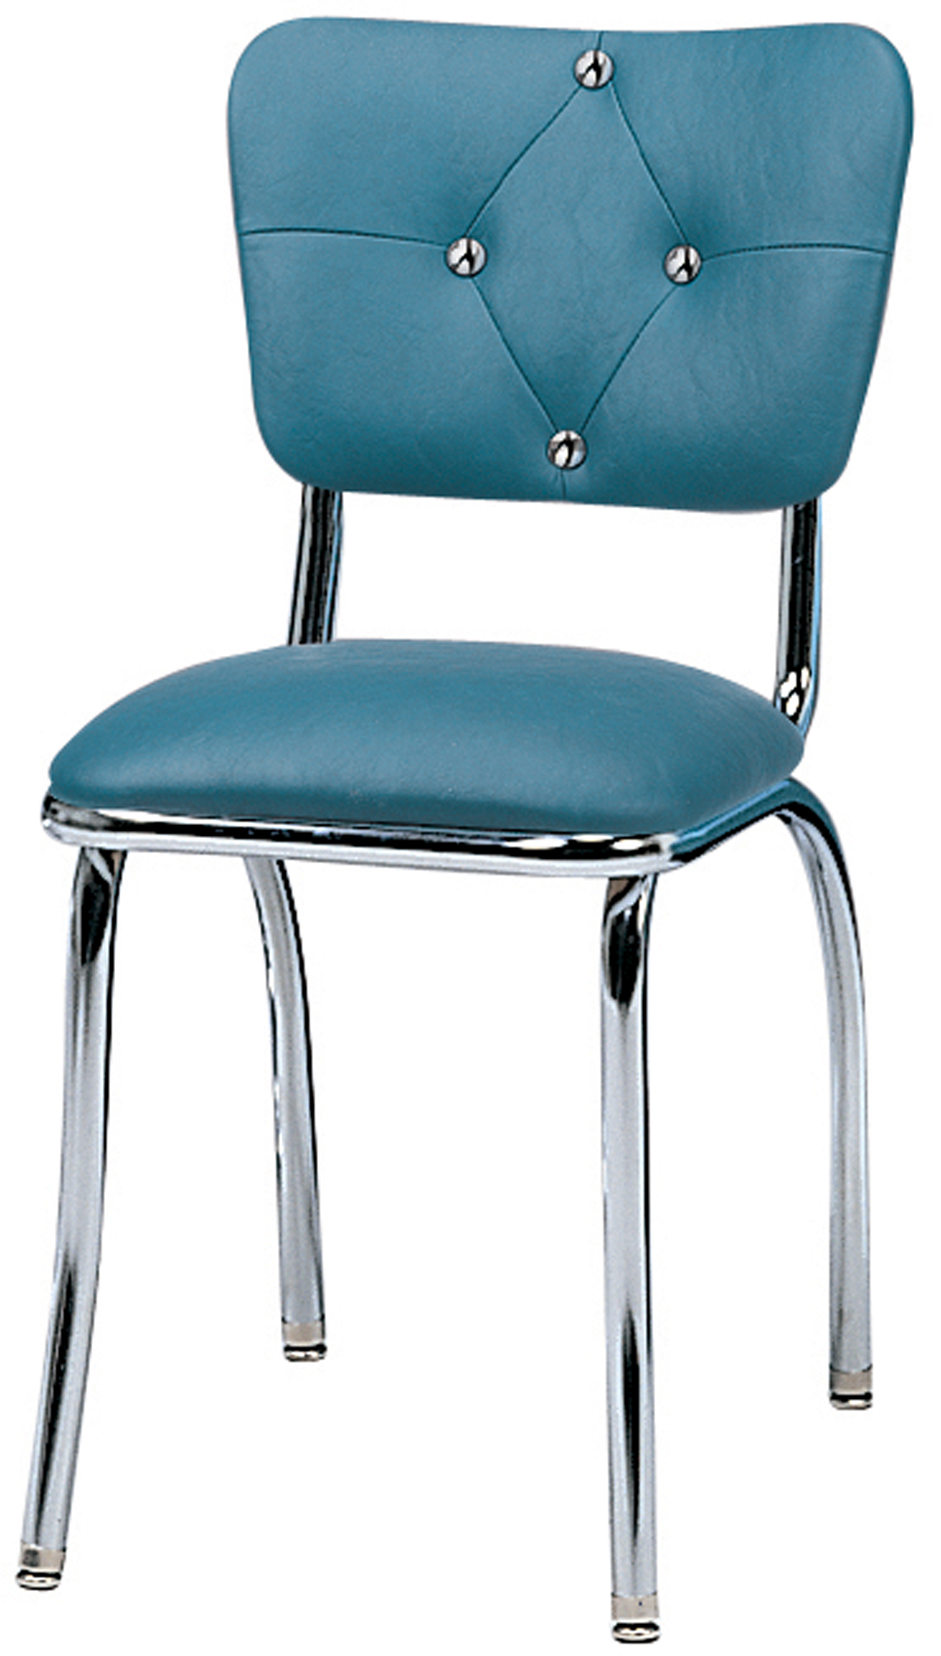 921dt New Retro Dining Diamond Tuft Back Diner Chair